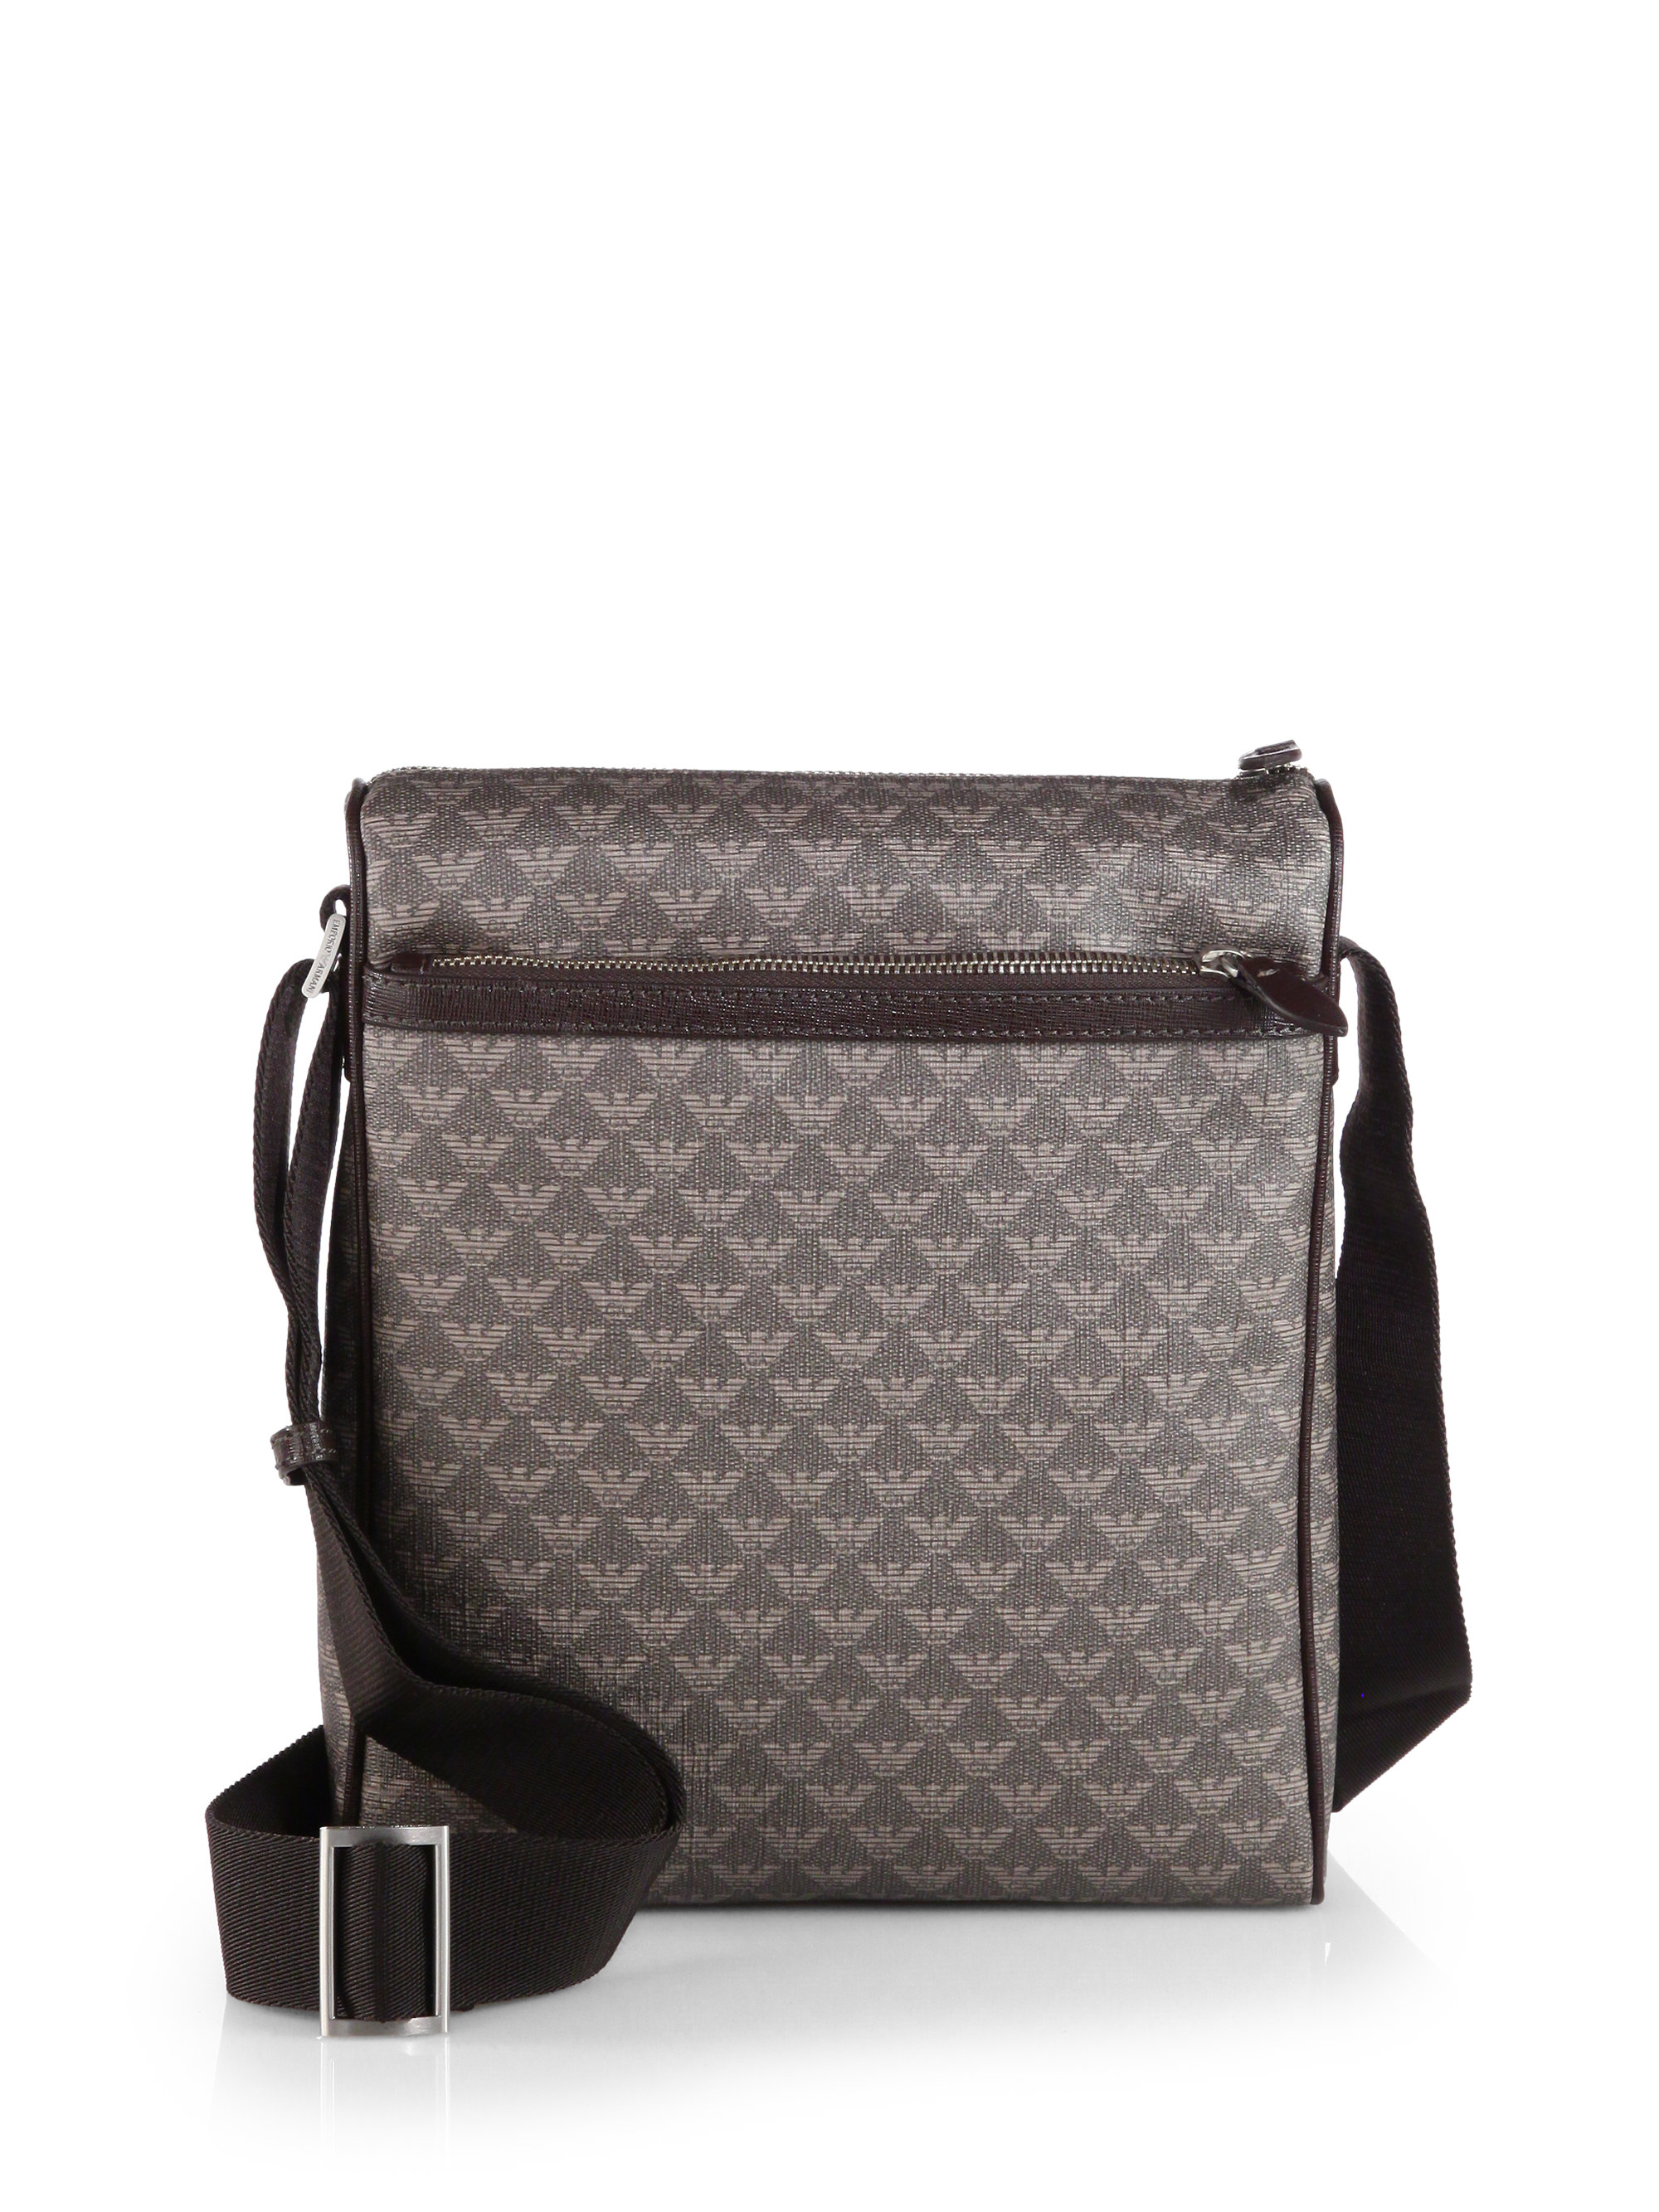 653ae7315177 Lyst - Emporio Armani Elongated Logo Messenger Bag in Brown for Men